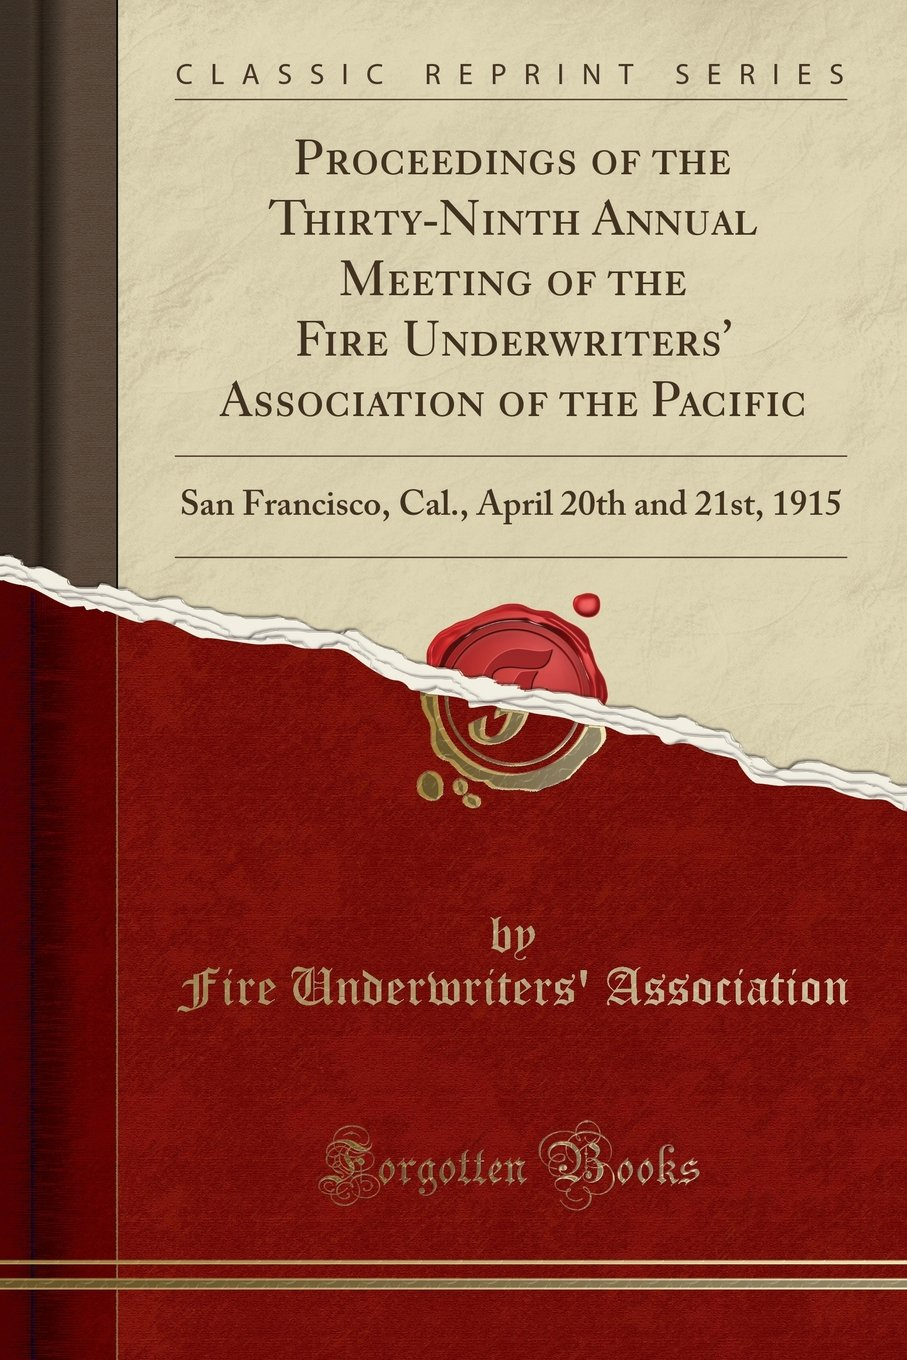 Proceedings of the Thirty-Ninth Annual Meeting of the Fire Underwriters' Association of the Pacific: San Francisco, Cal., April 20th and 21st, 1915 (Classic Reprint) pdf